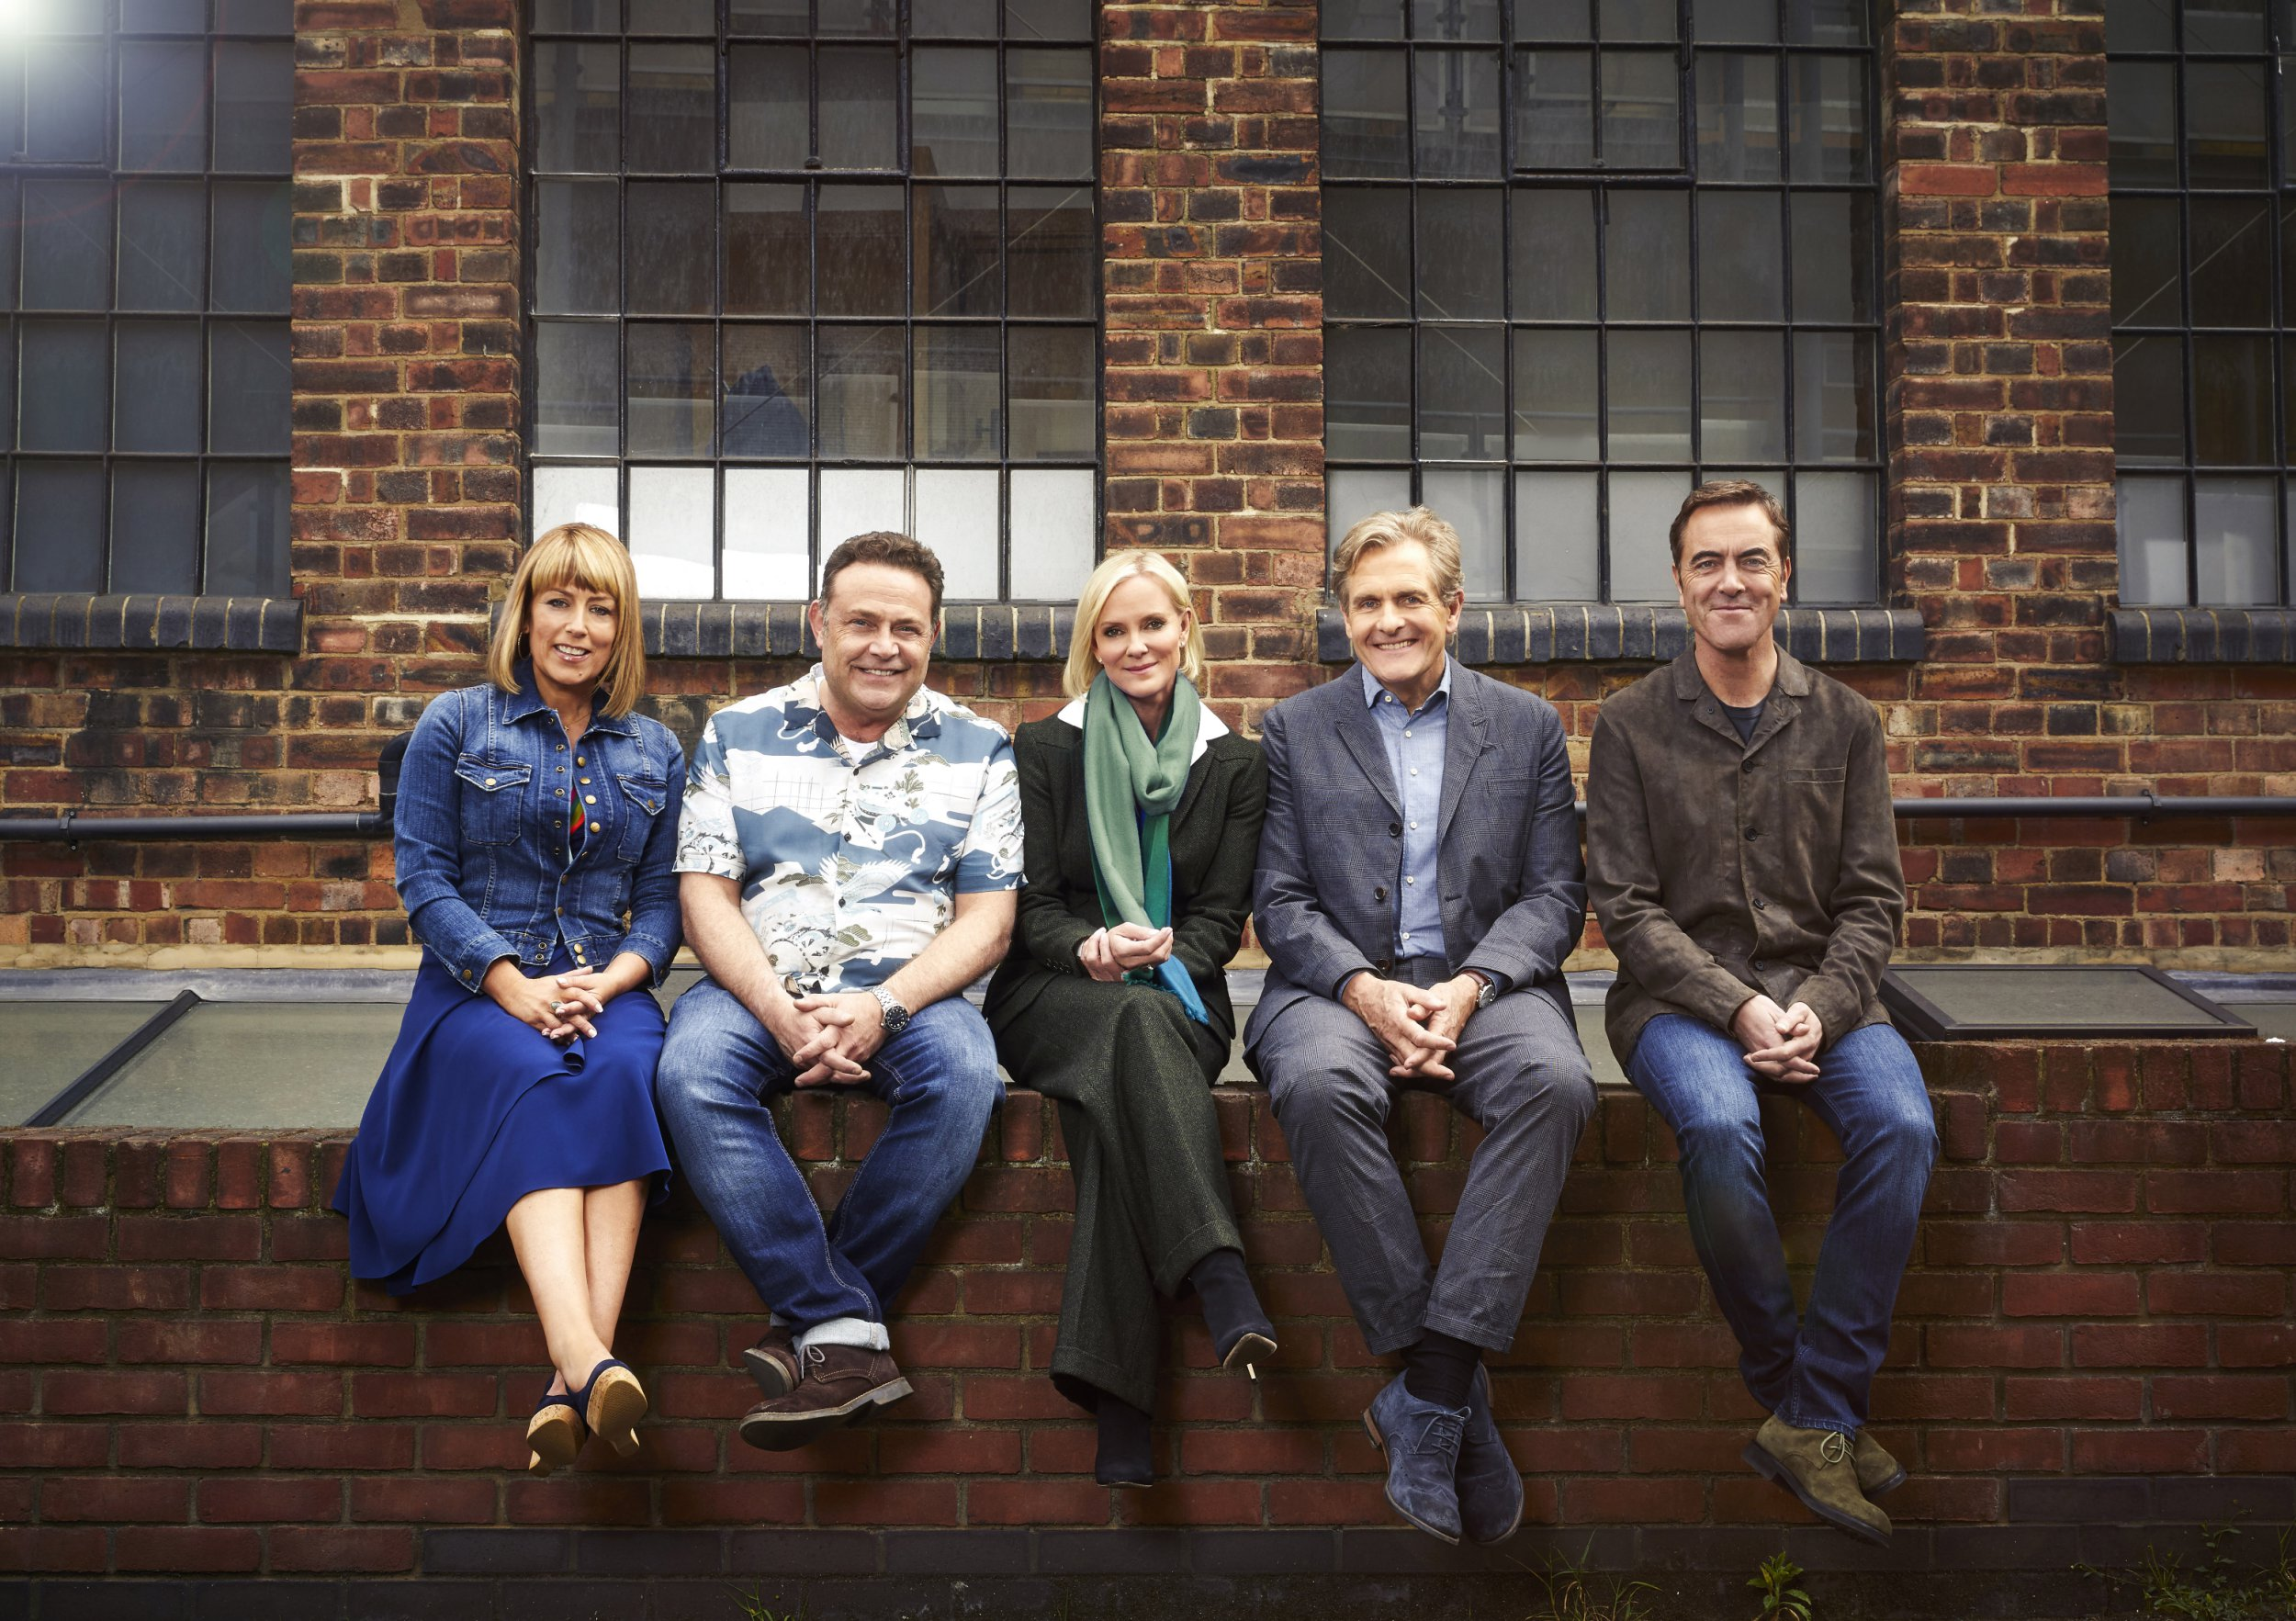 What can we expect from Cold Feet series 7?